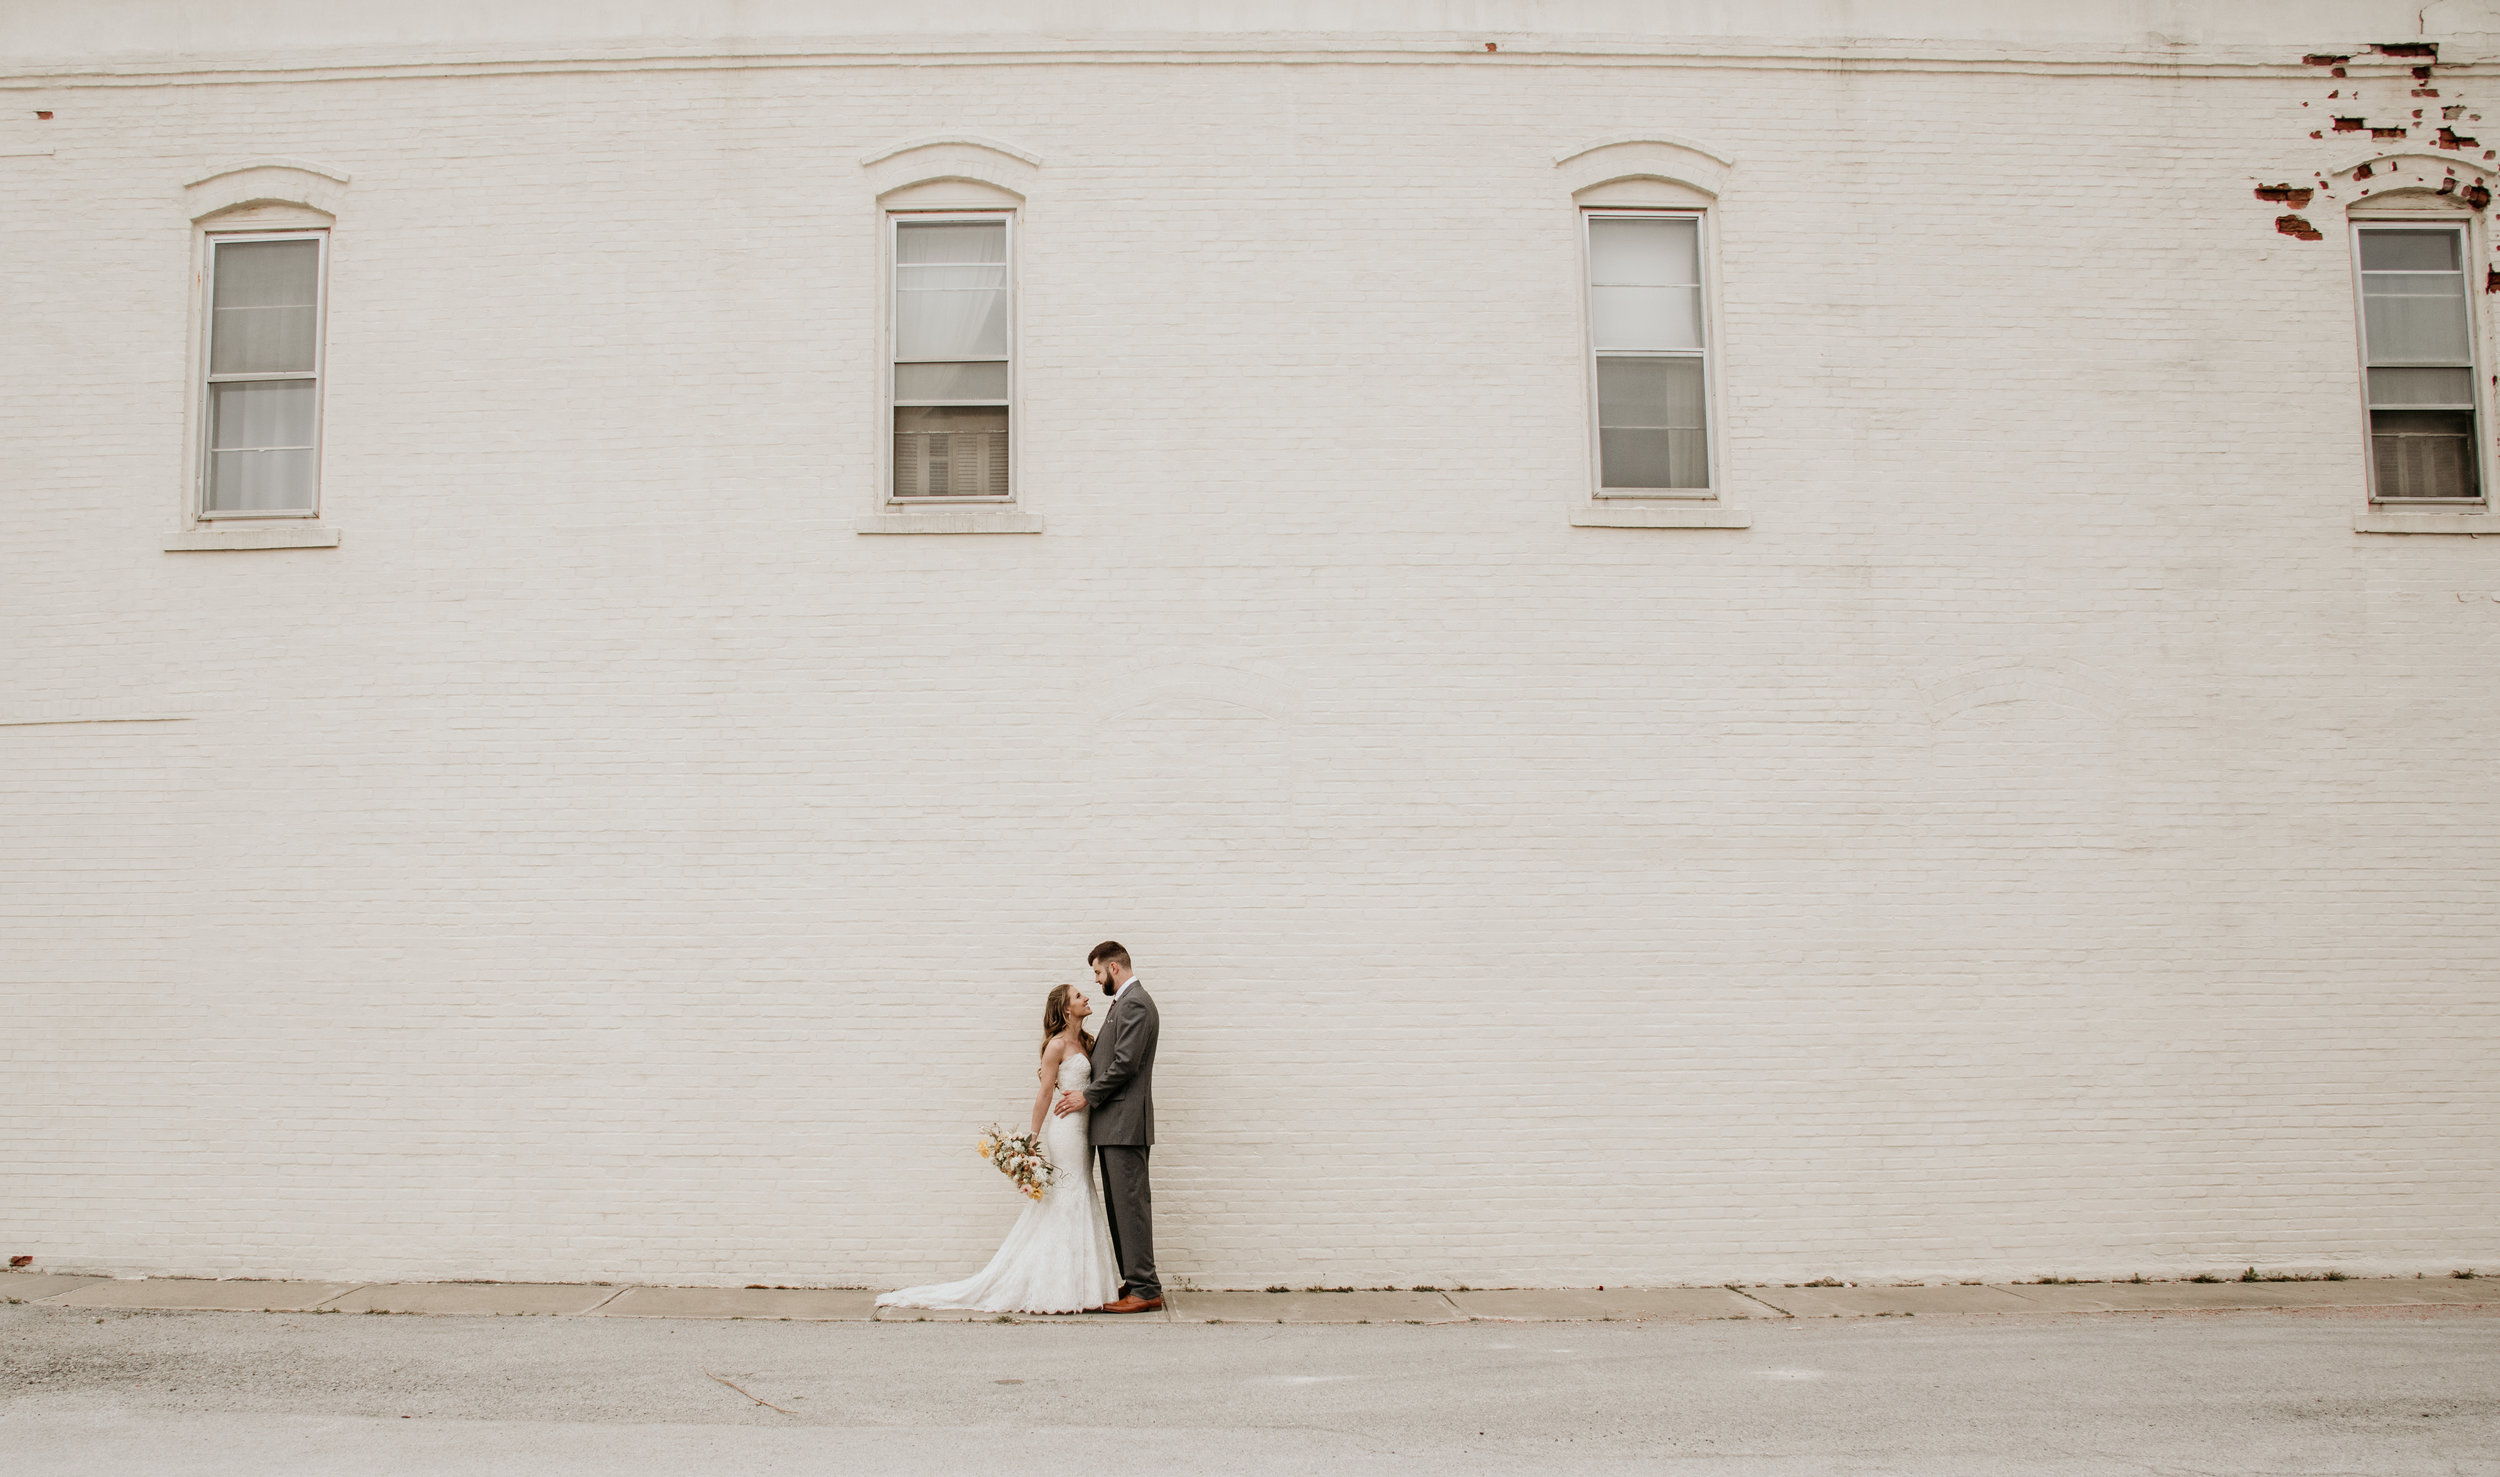 Kansas City Wedding Photographer | Colorado Elopement | Seattle Wedding | San Diego Wedding Photography